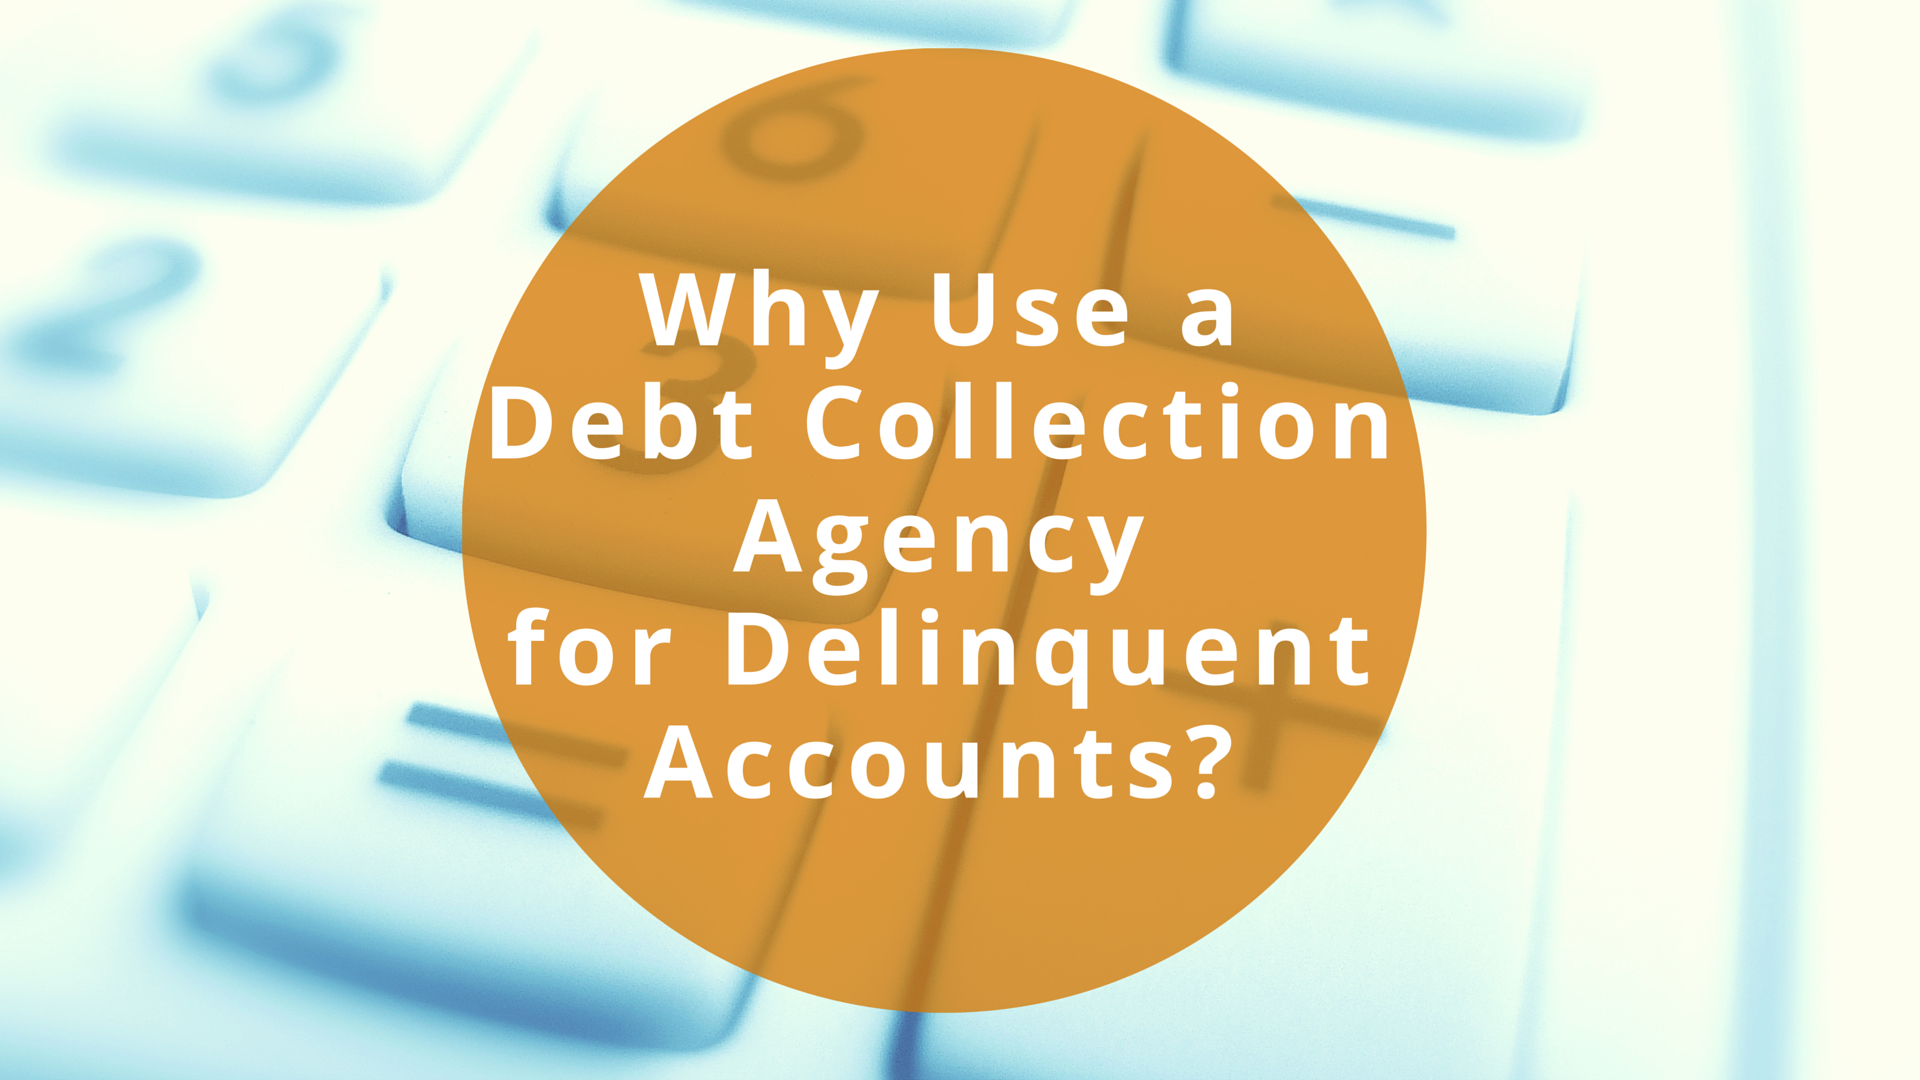 Debt Collection Agency >> Why Use A Debt Collection Agency for Delinquent Accounts ...